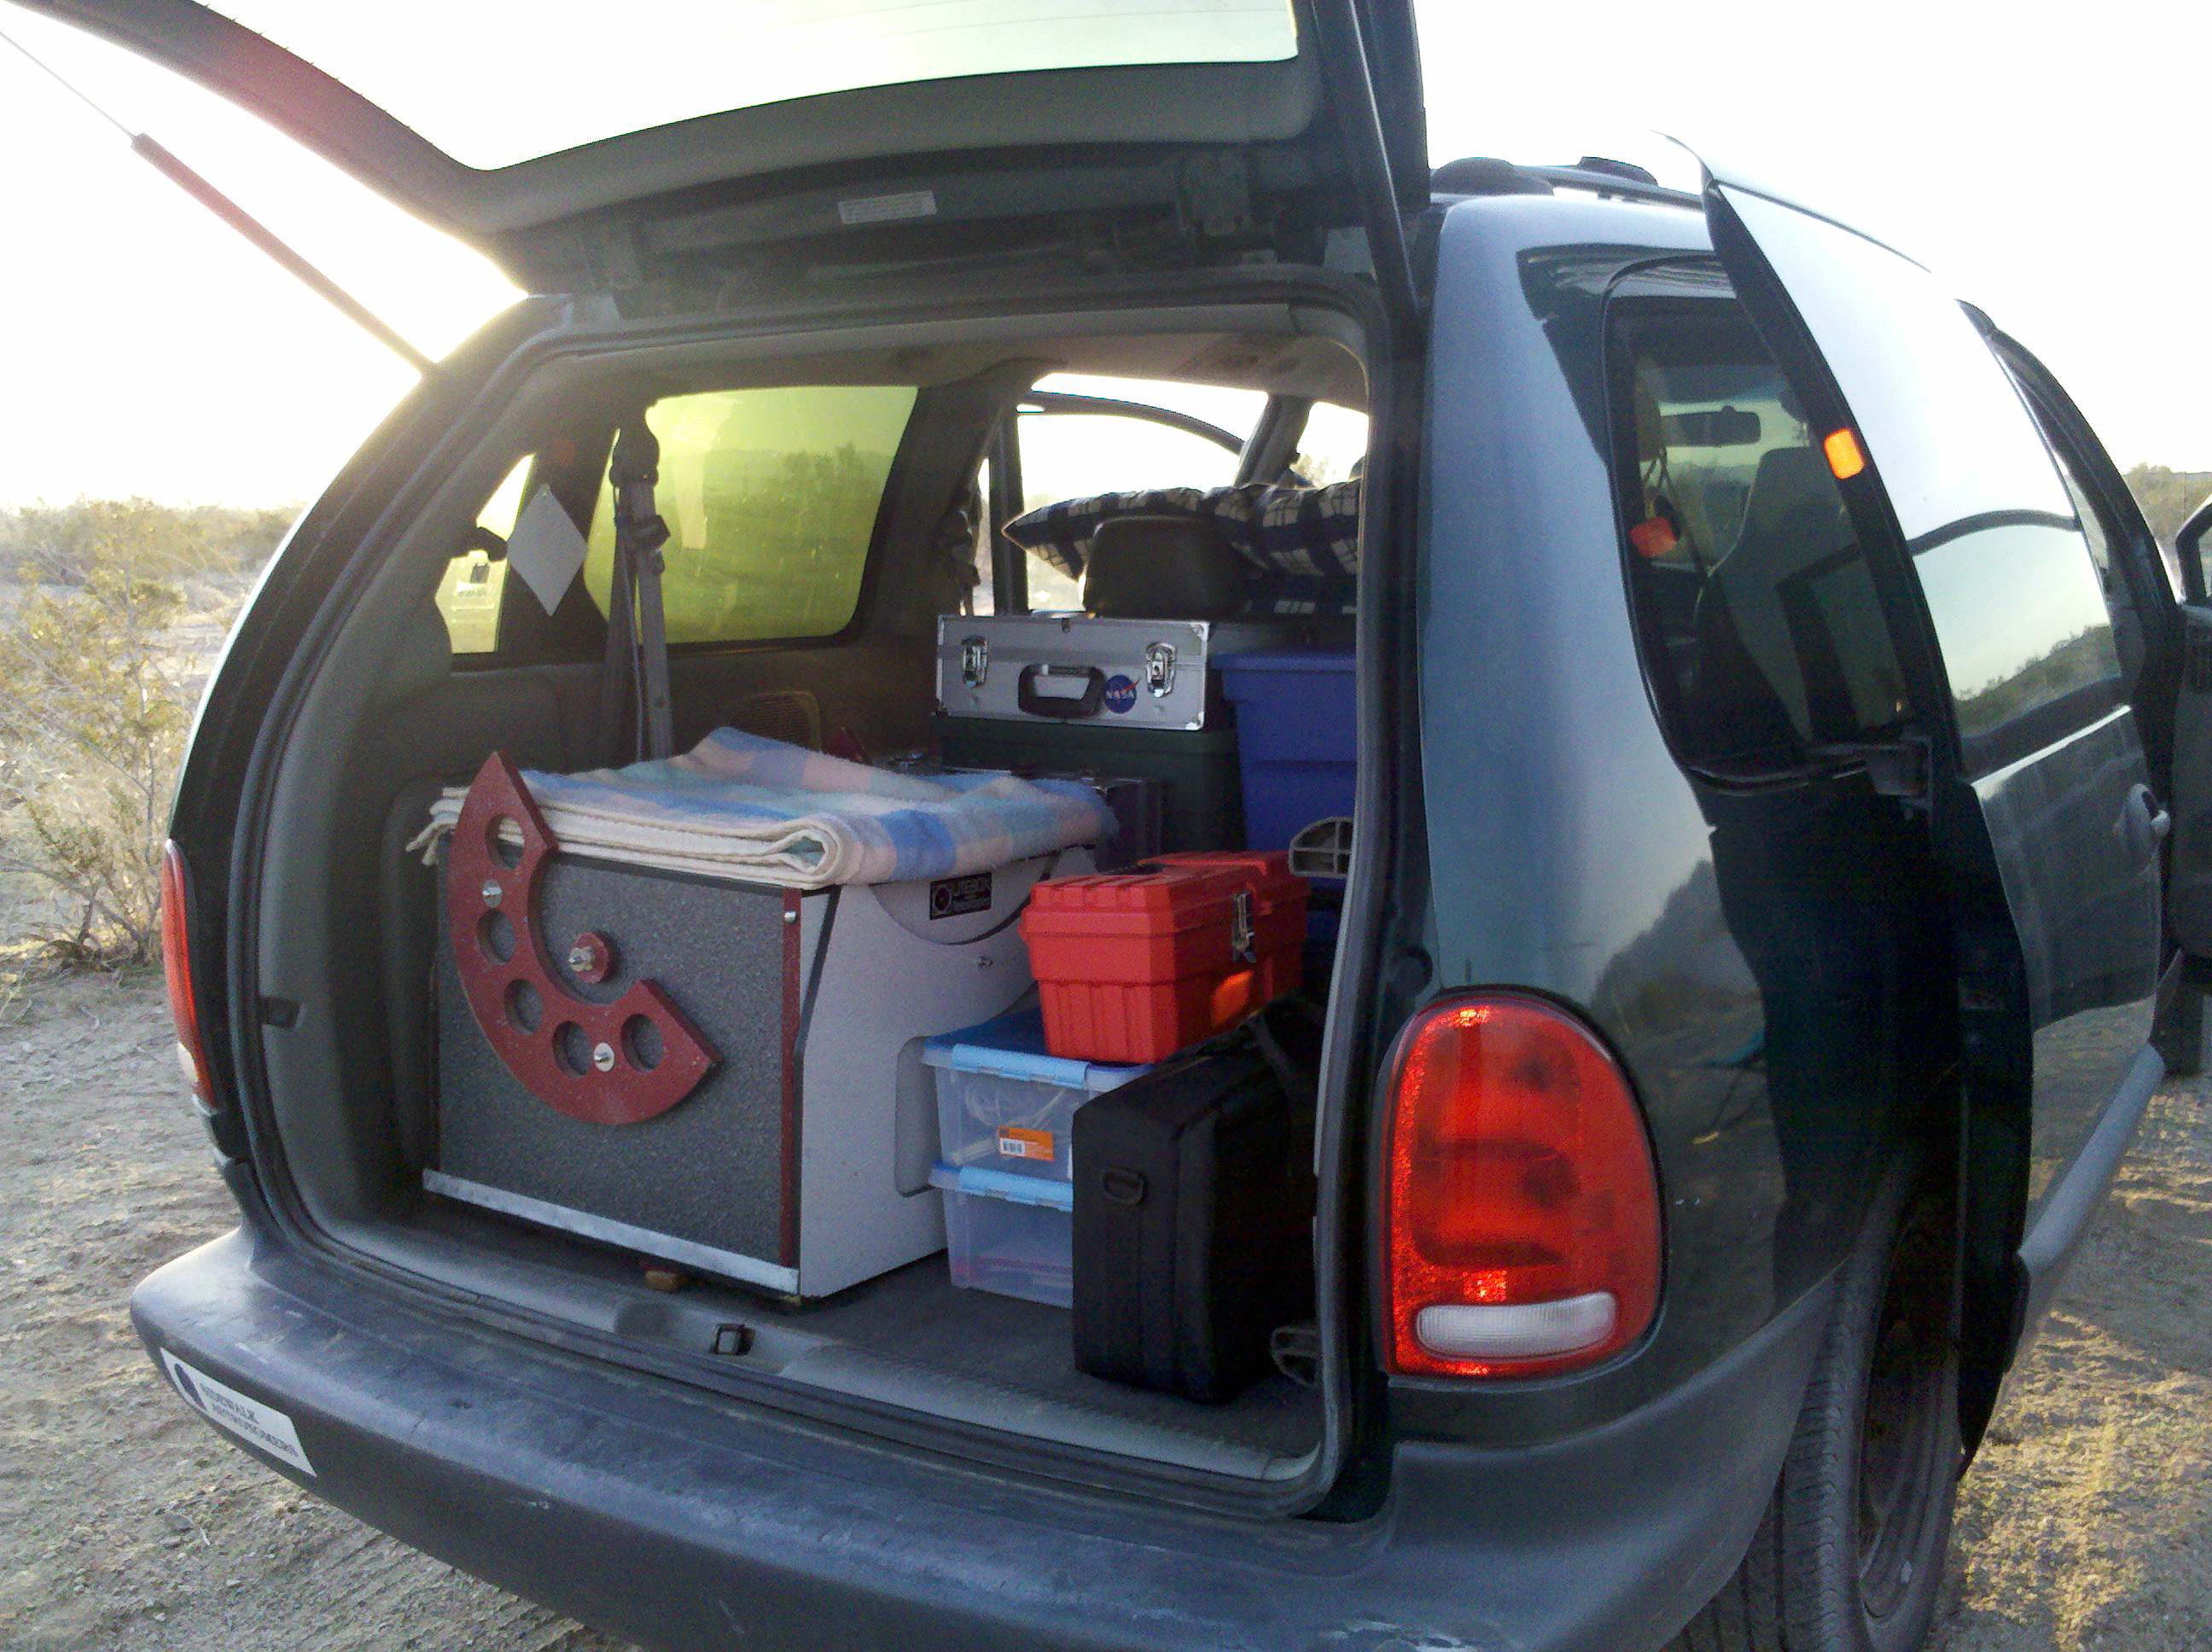 2011-01-29-chuckwalla-119.jpg - Our van with all the telescope gear, ready for tables and chairs on top.